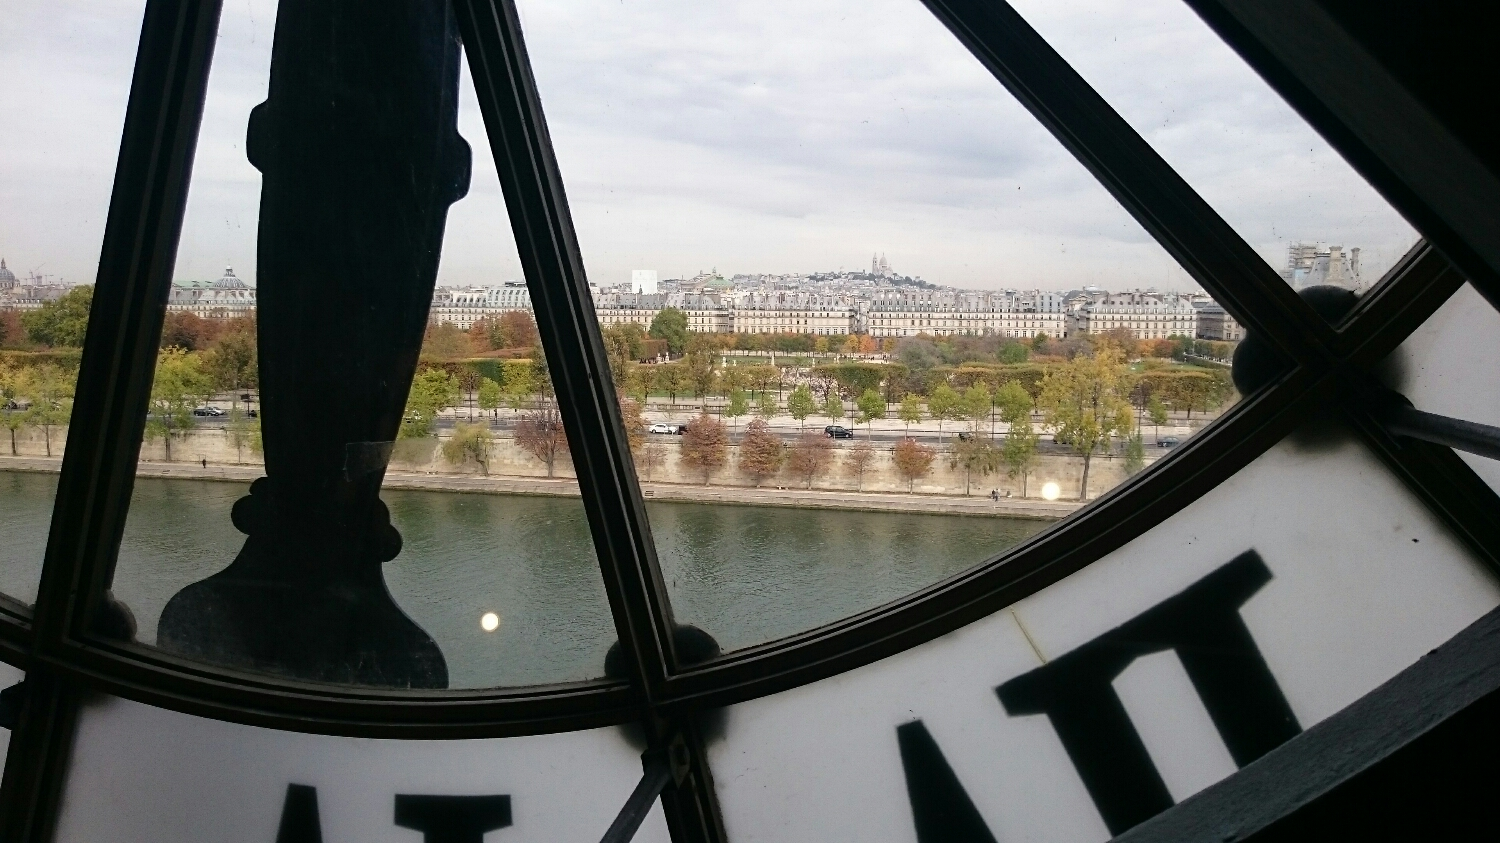 From Musee d'Orsay